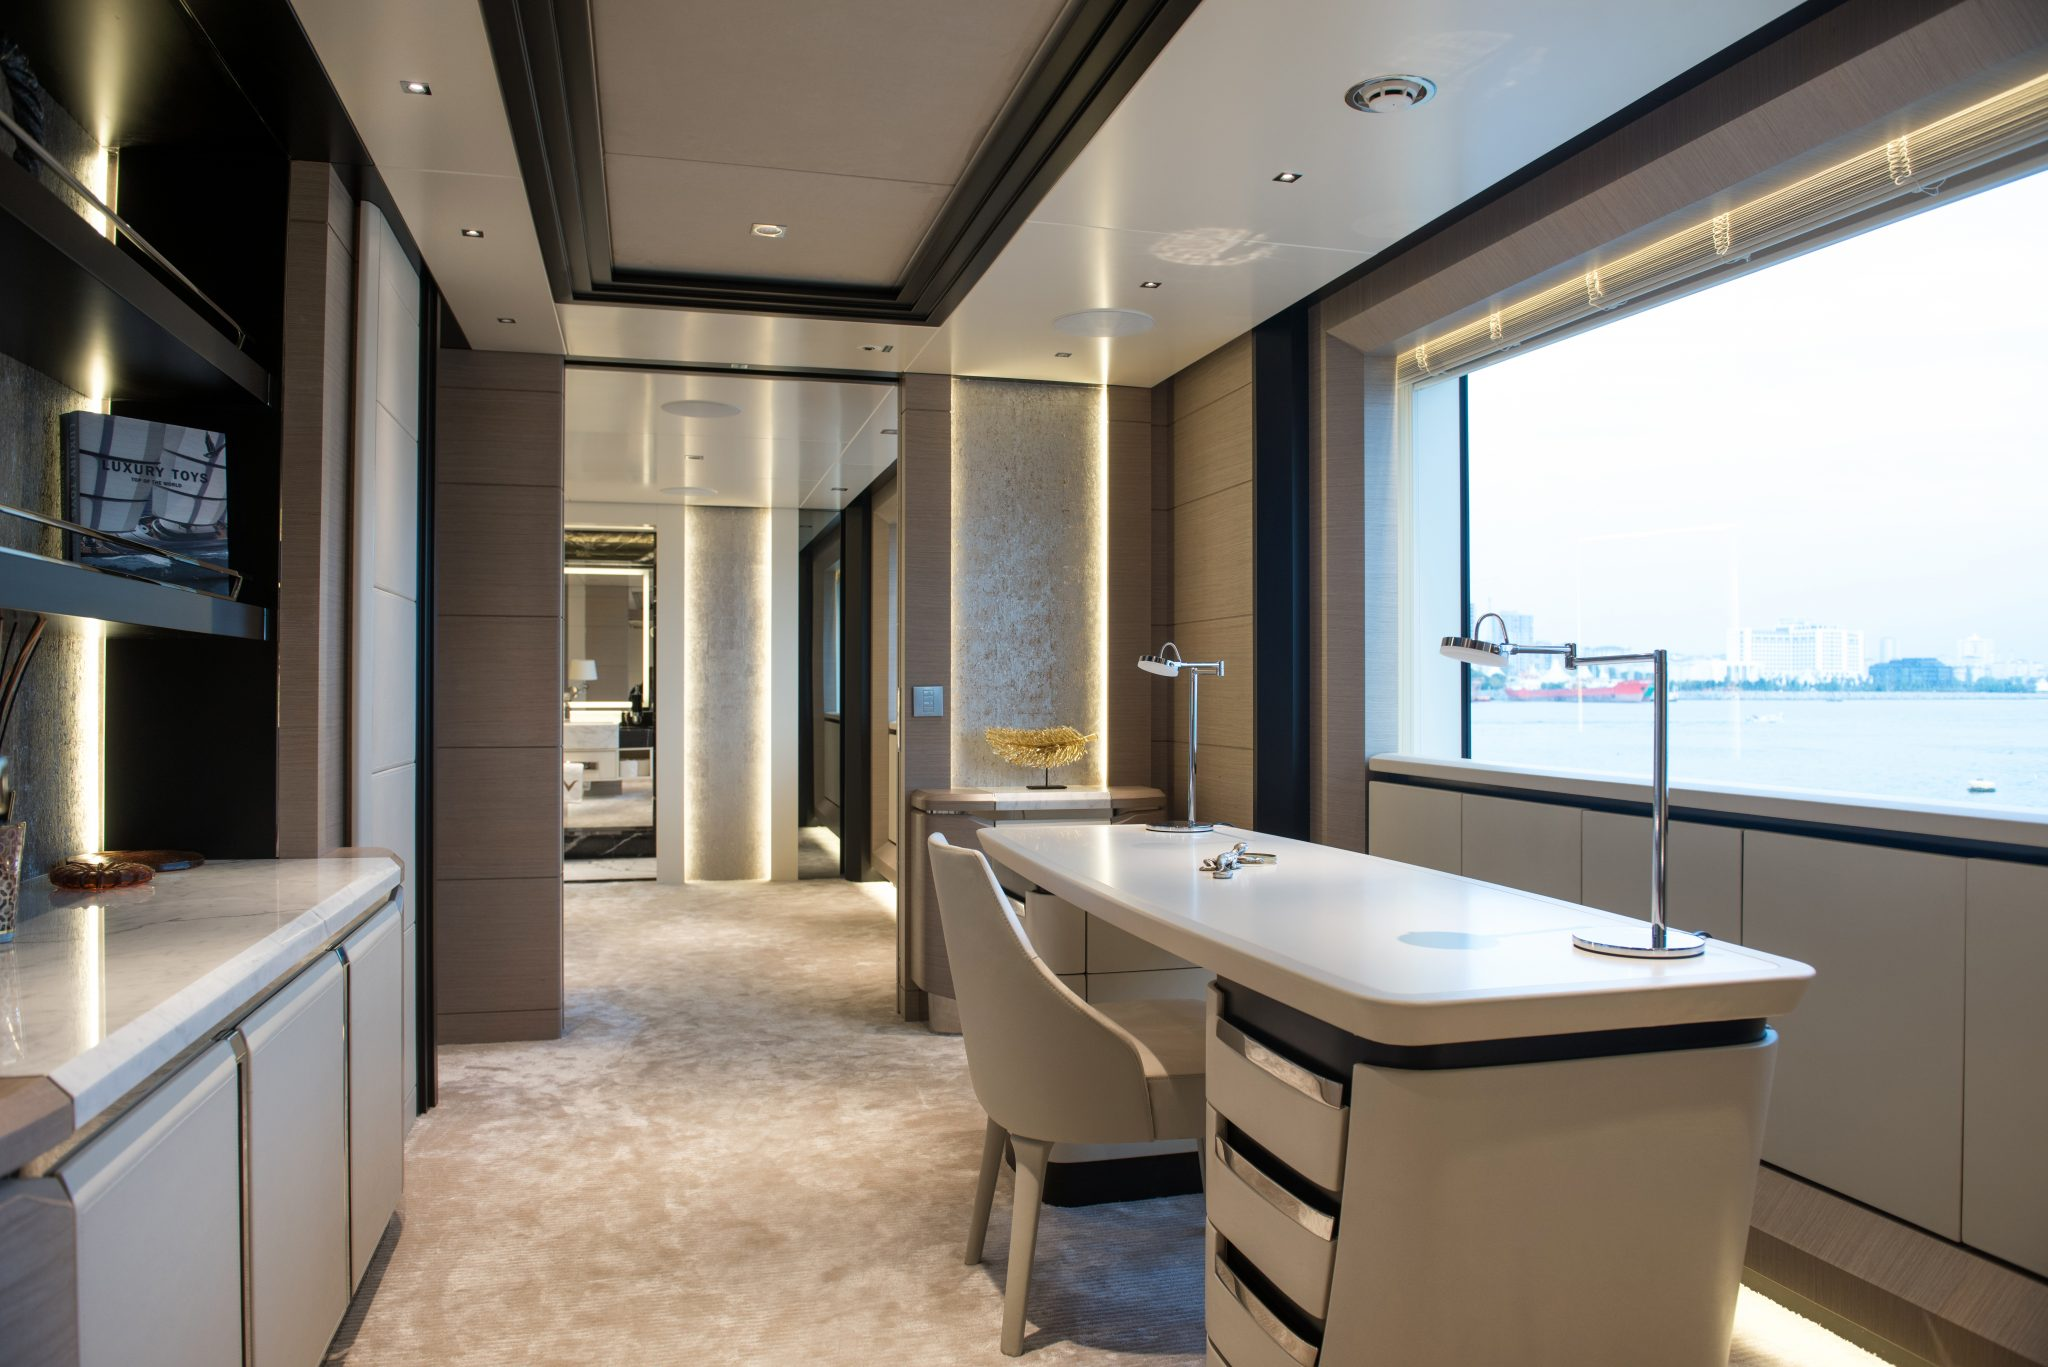 44m Virtus Yacht Owner's Cabin Entrance - Lounge